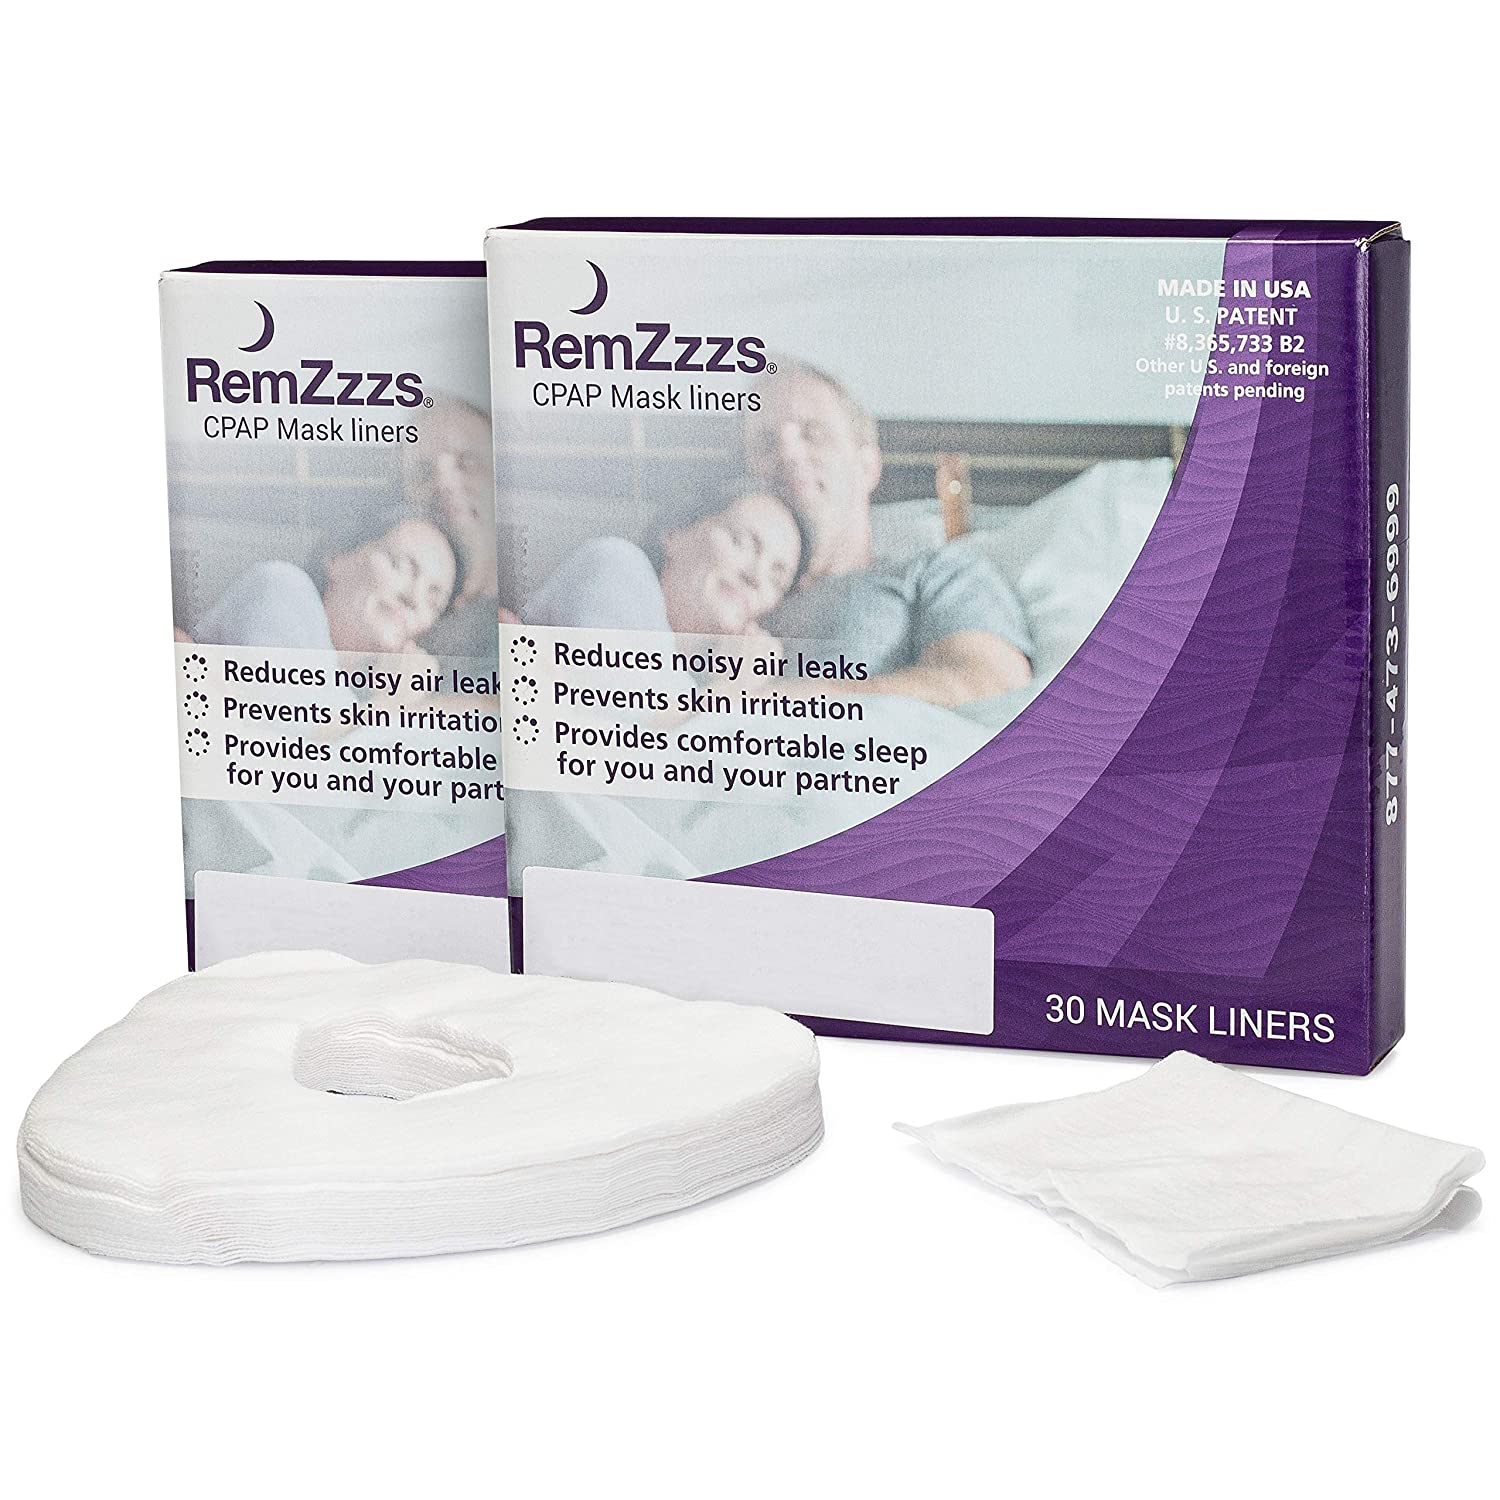 RemZzzs Full Face Cpap Mask Liners (K3-FL) - Reduce Noisy Air Leaks and Painful Blisters 2 Pack- Cpap Supplies and Accessories - Compatible with Resmed Respironics DeVilbiss